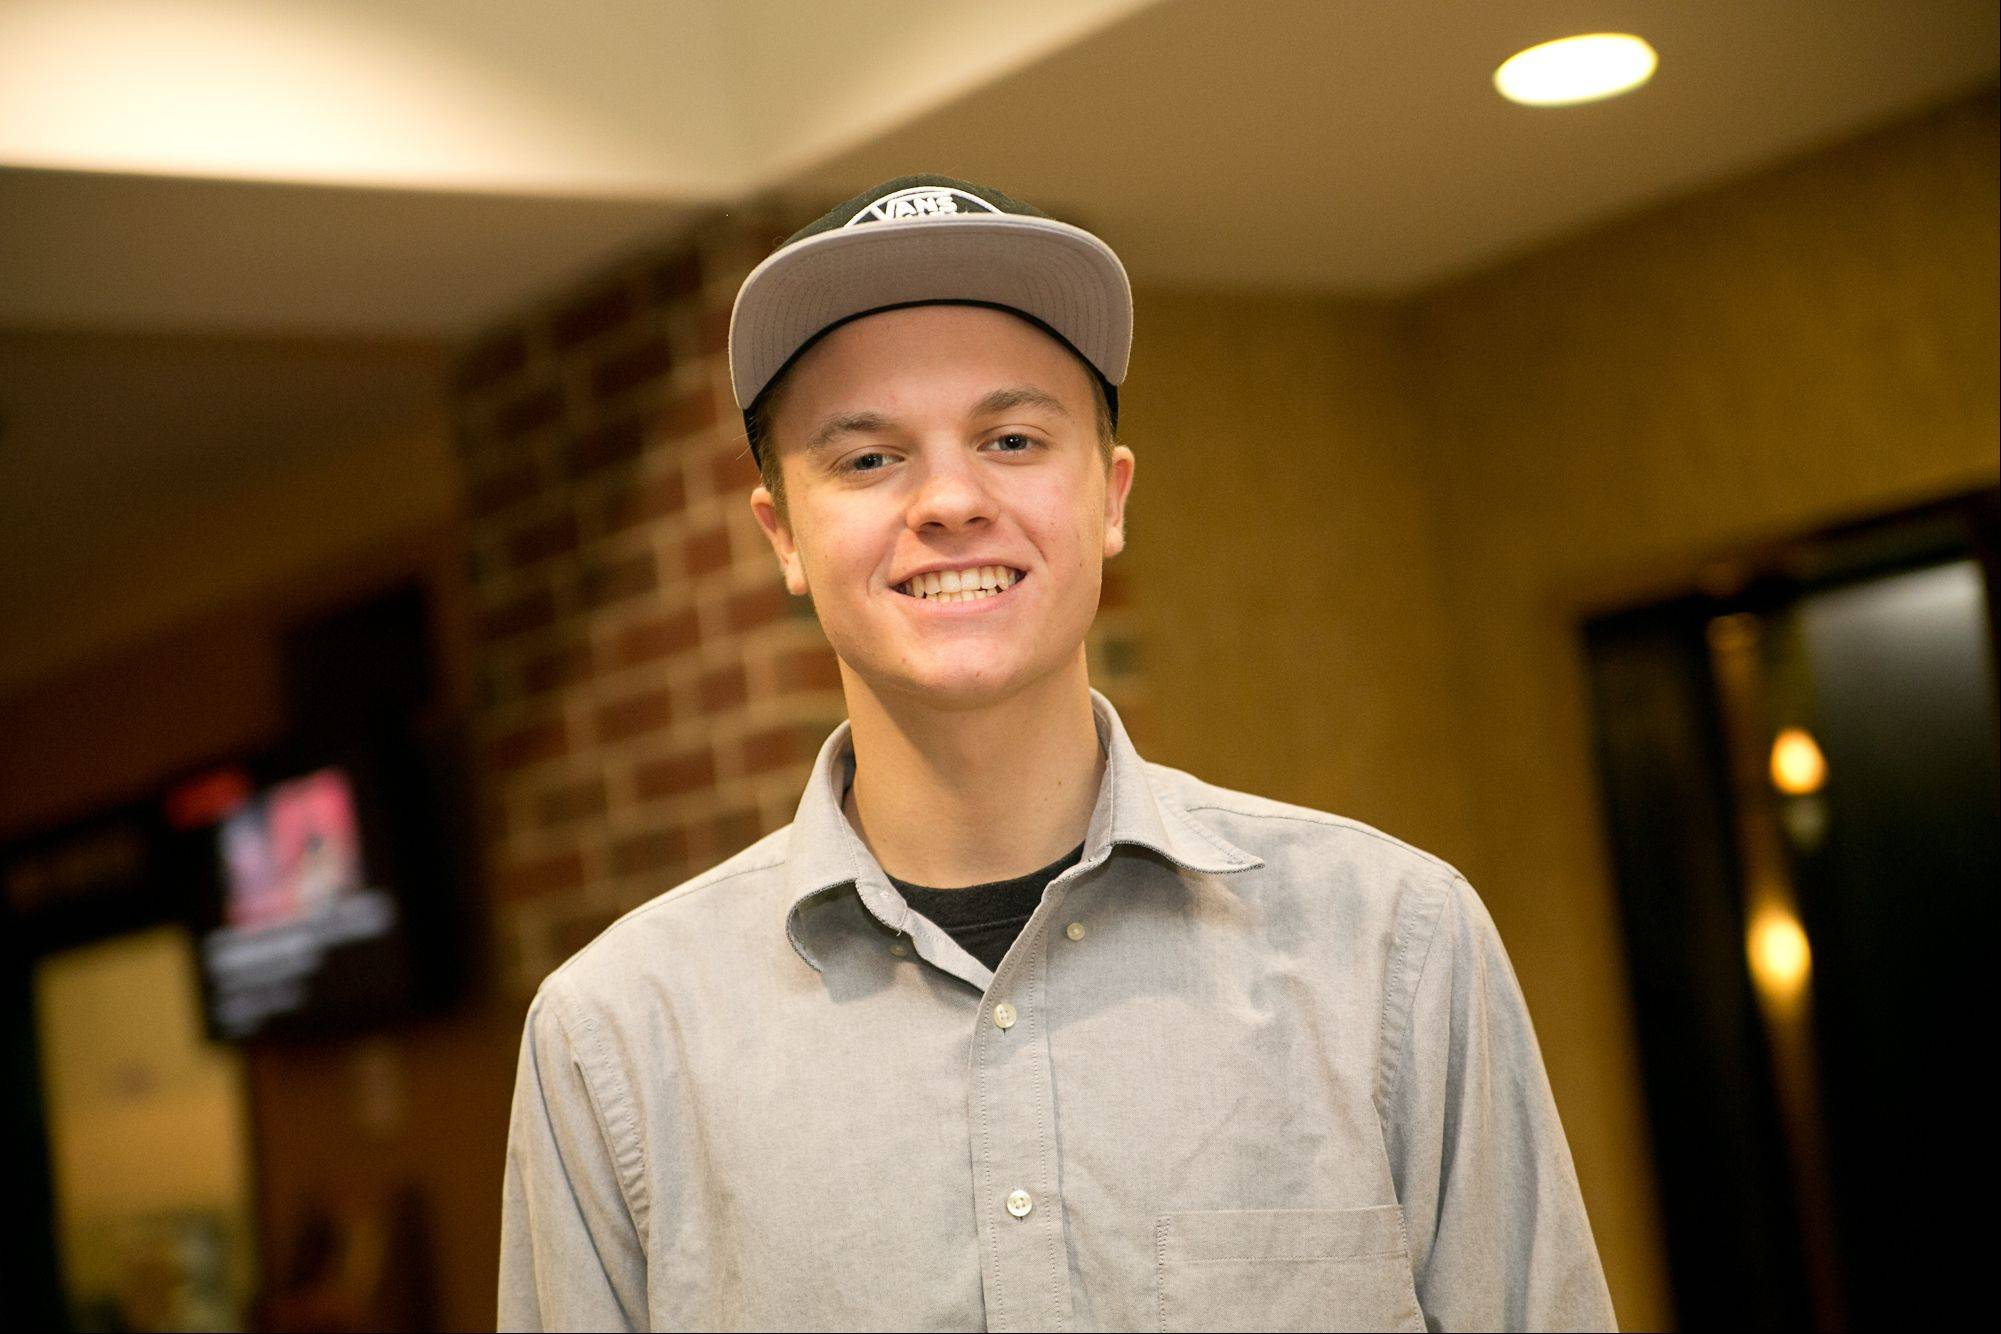 Chinese Take Out, featuring Luke Young of Lombard, is one of the Top 30 finalists in Suburban Chicago's Got Talent.